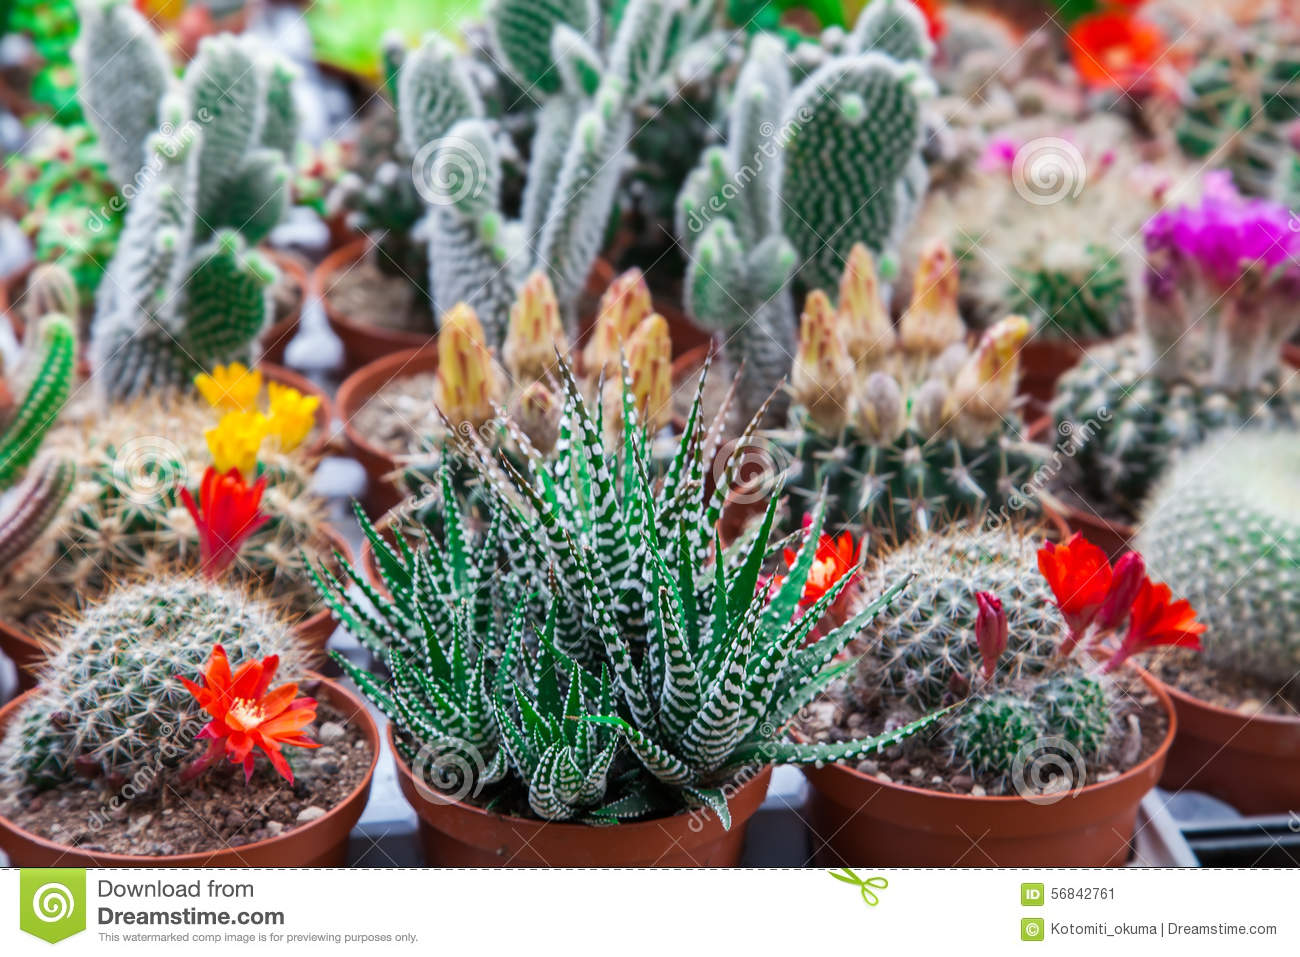 Different types of cactuses stock photo image 56842761 - Tipos de cactus fotos ...